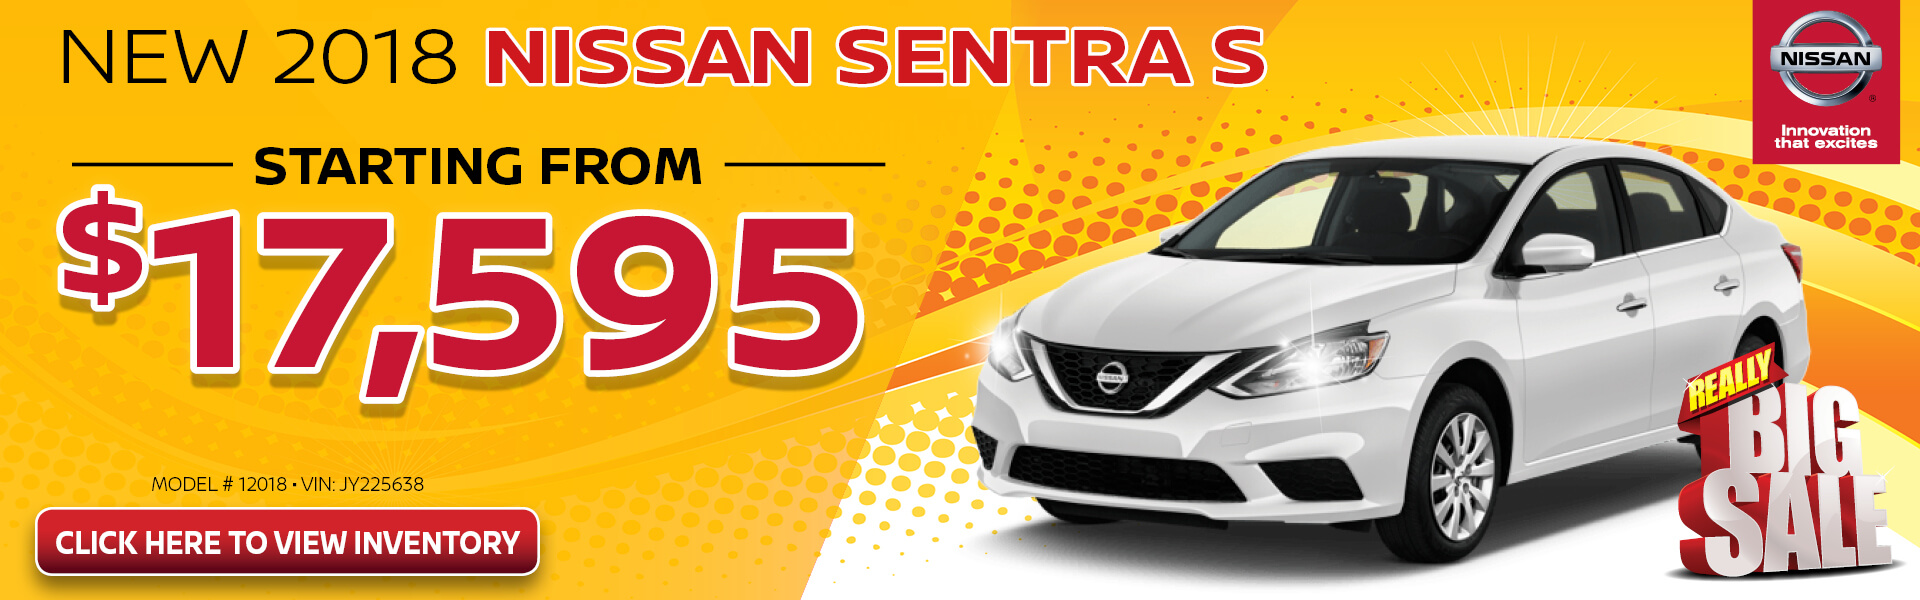 Nissan Sentra $17,595 Purchase